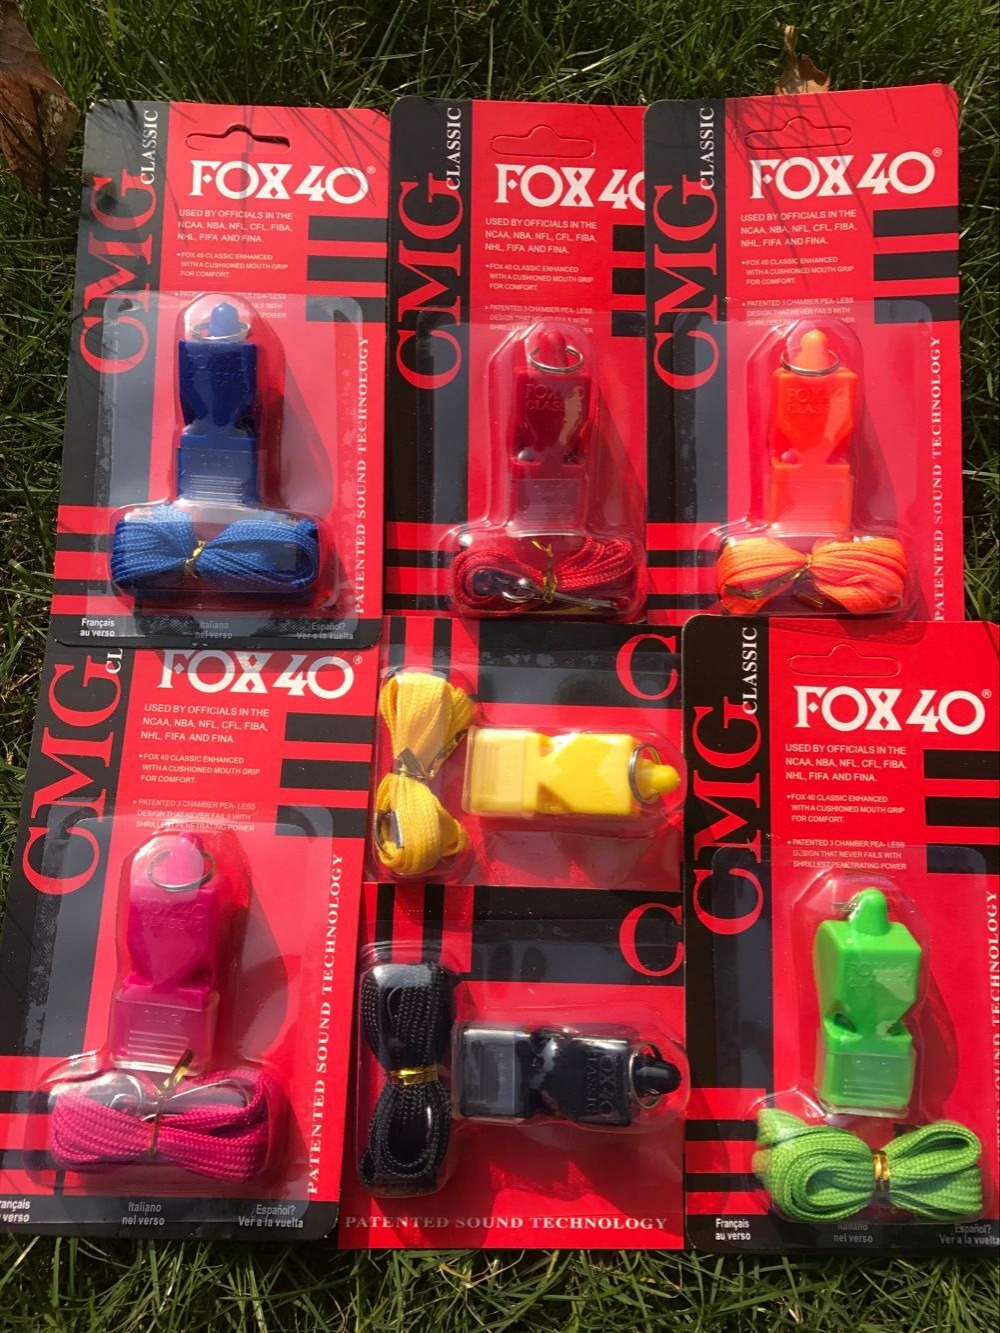 Free Shipping Sample Sale-1PC Colorful Fox 40 Whistle And Lanyard In Red Blister Packing